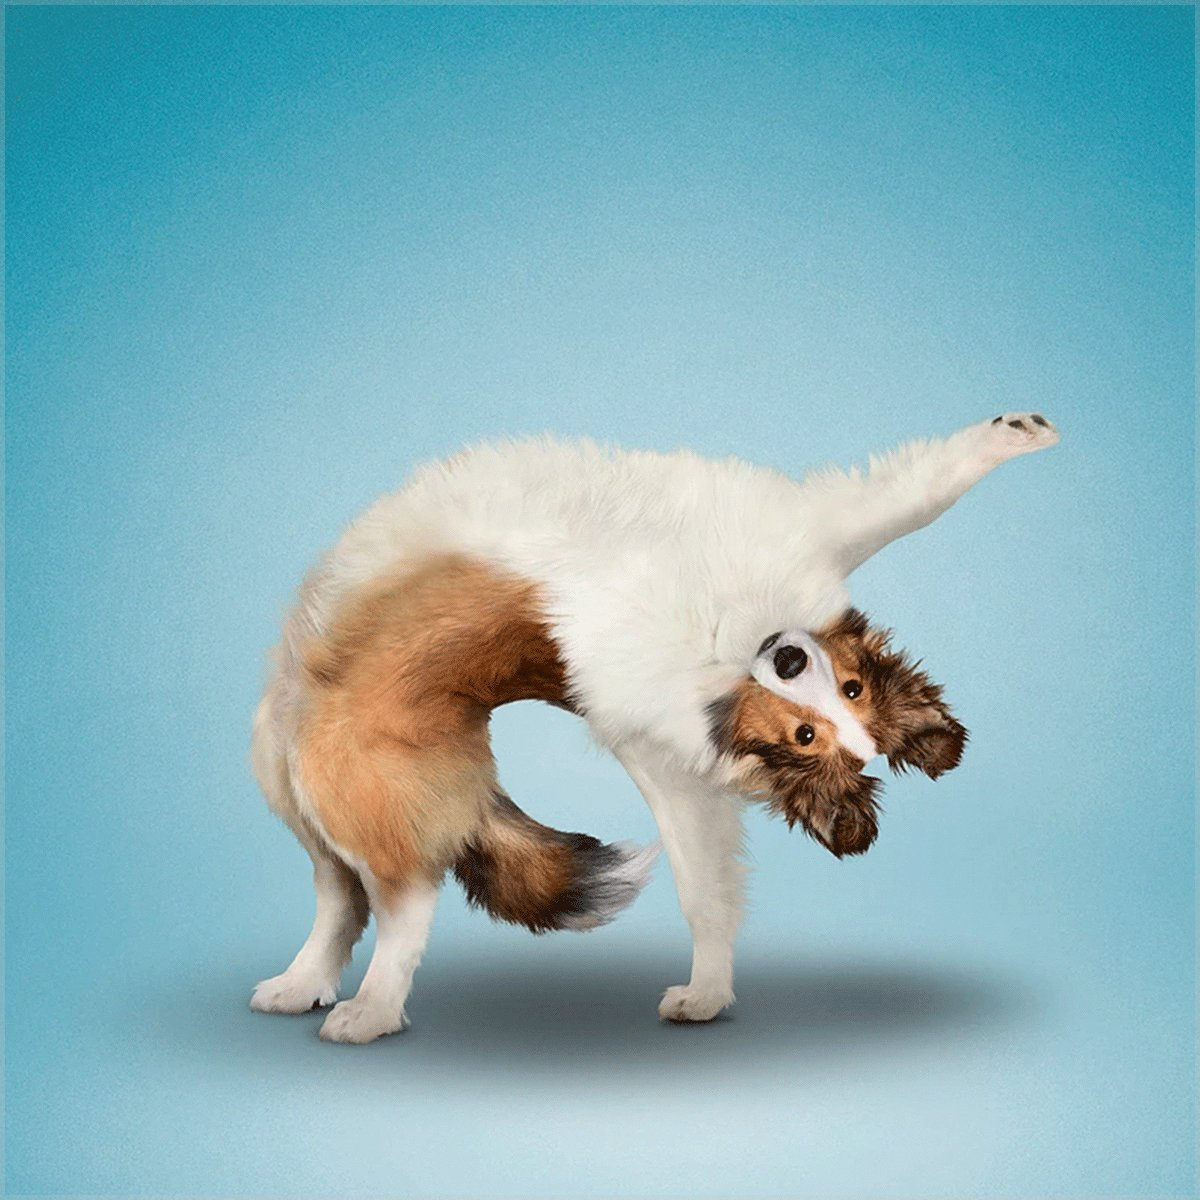 Paws up if you want to do yoga   Stretch your imagination with #photohrapher Dan Borris: @yogadogs and see our furry friends star in his paw-some #artwork.  Check out his #Wix site >> https://wix.click/2sSIwedpic.twitter.com/QZb2nO8UGu